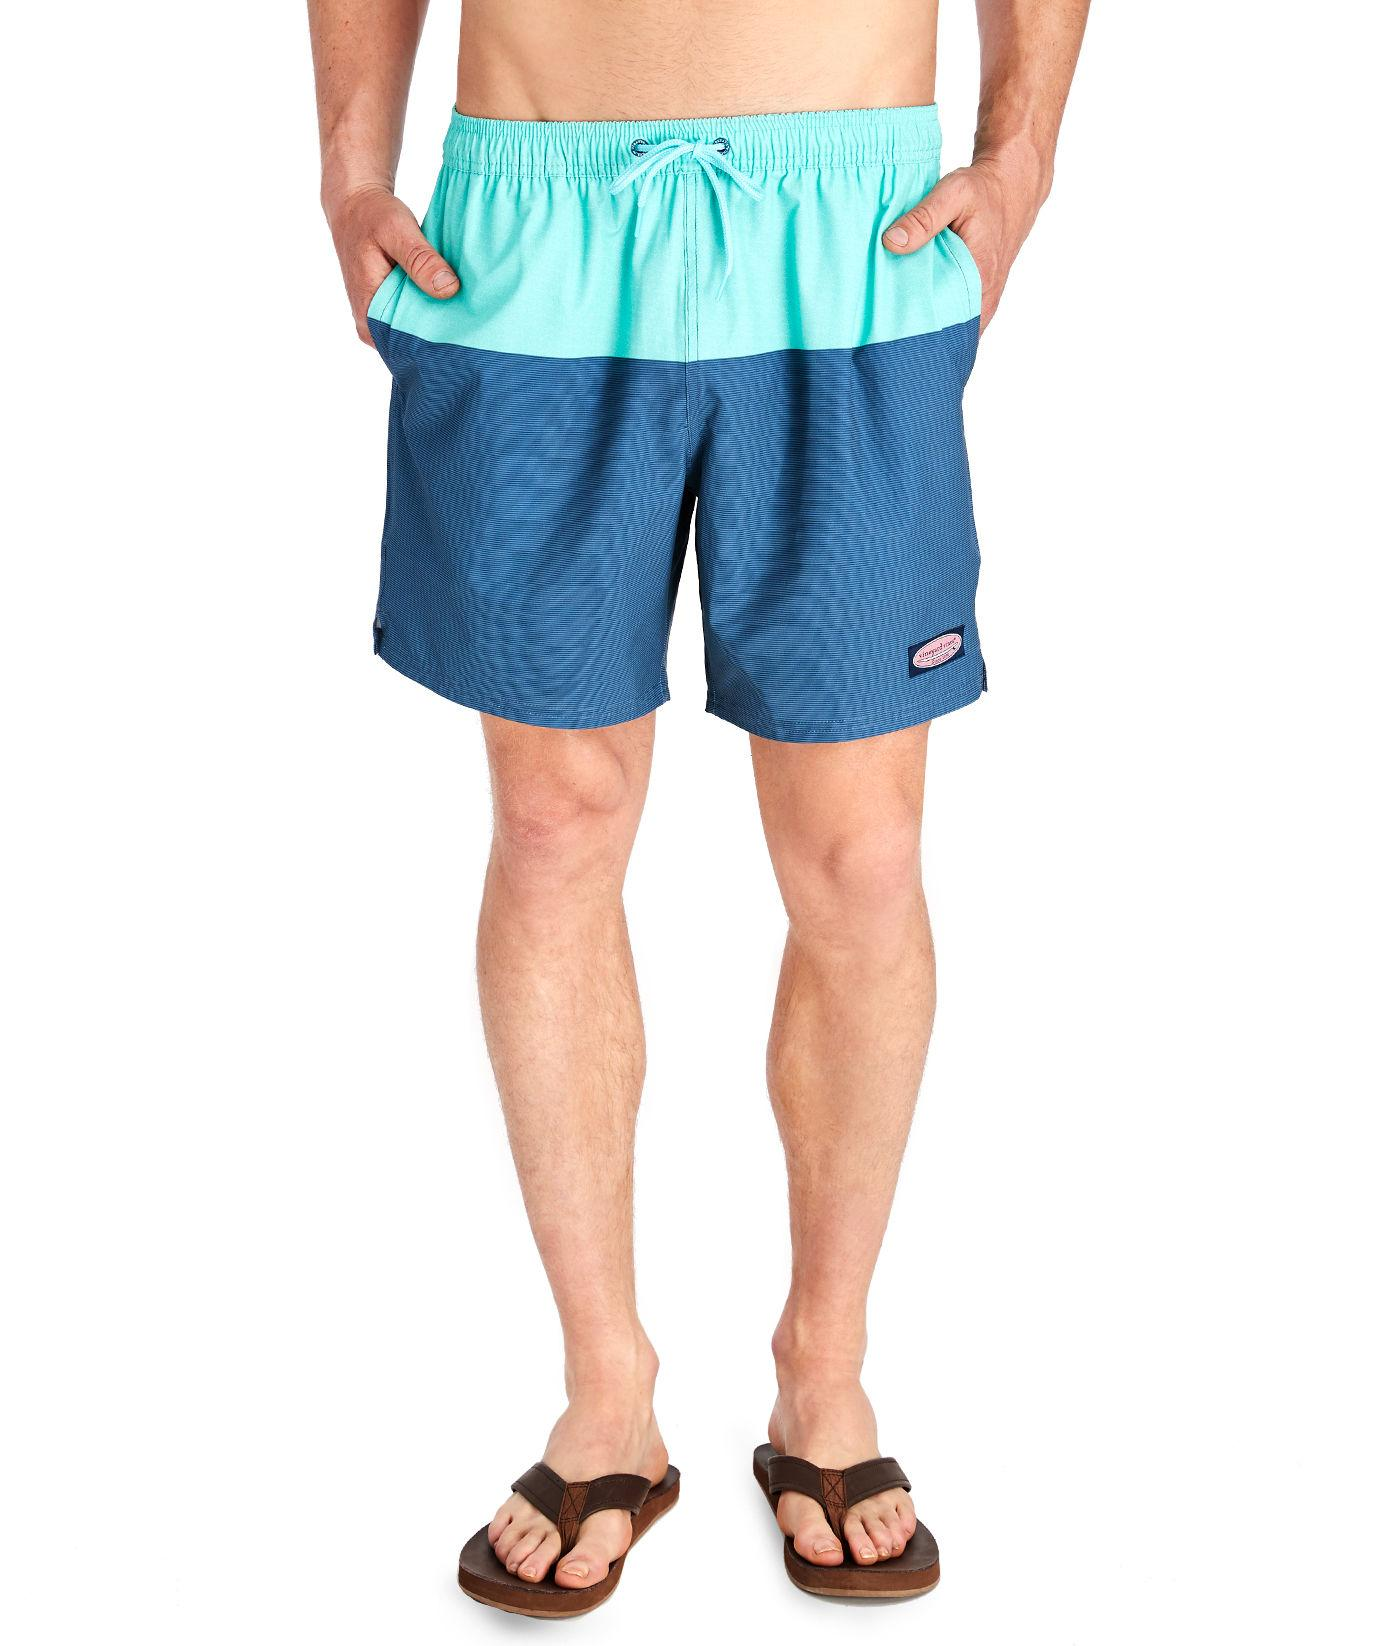 5942a2d2bd Vineyard Vines Pieced Mini Starfish Chappy Trunks in Blue for Men - Lyst